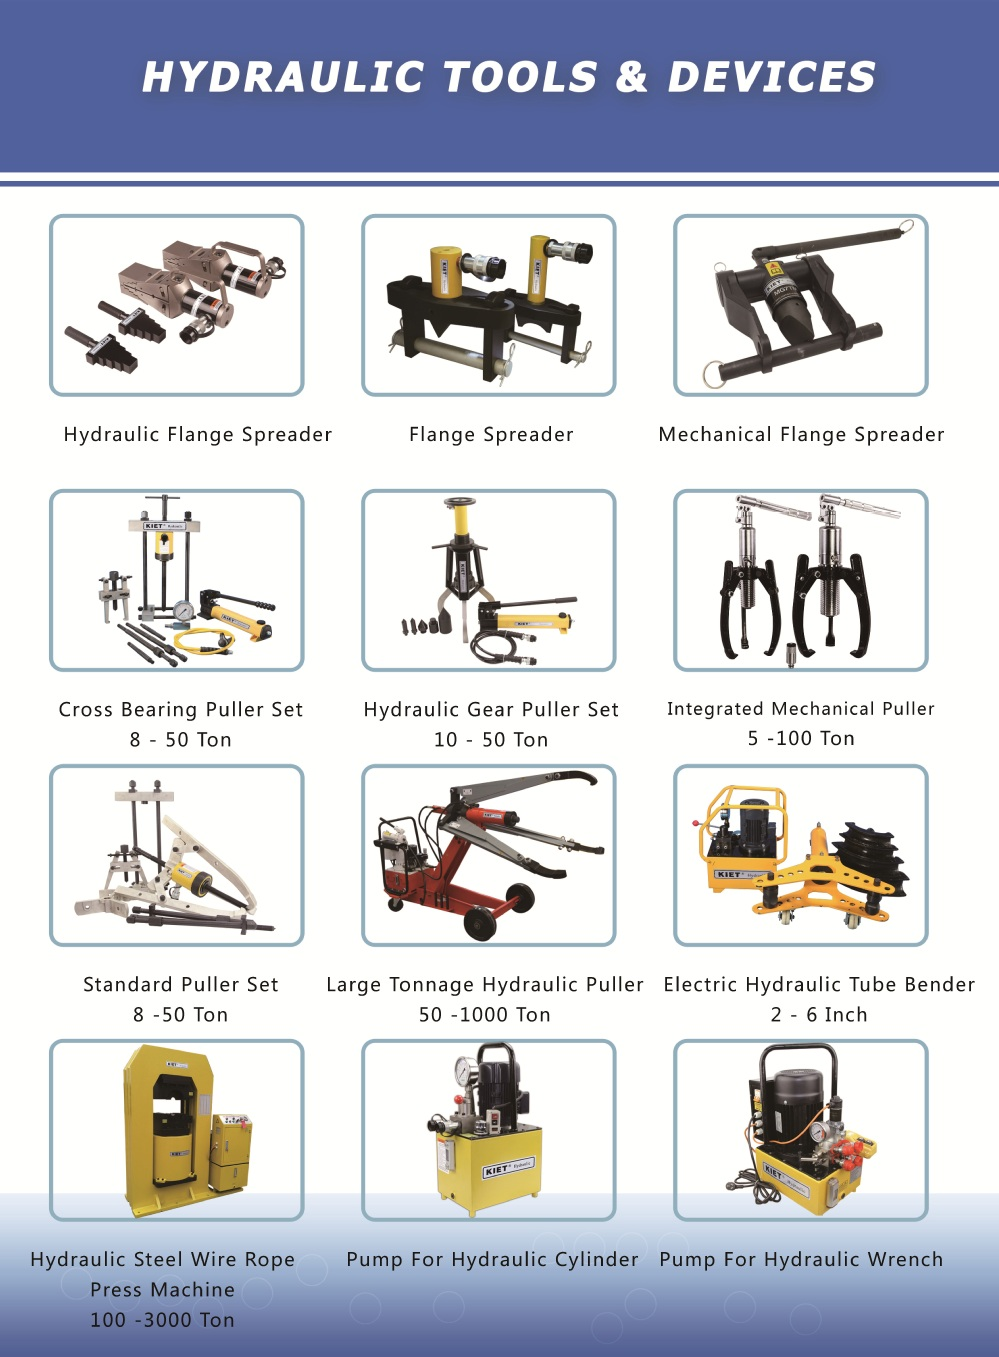 Hydraulic Puller Philippines : S?rie rsm ton hidr?ulica enerpac plana jack macaco